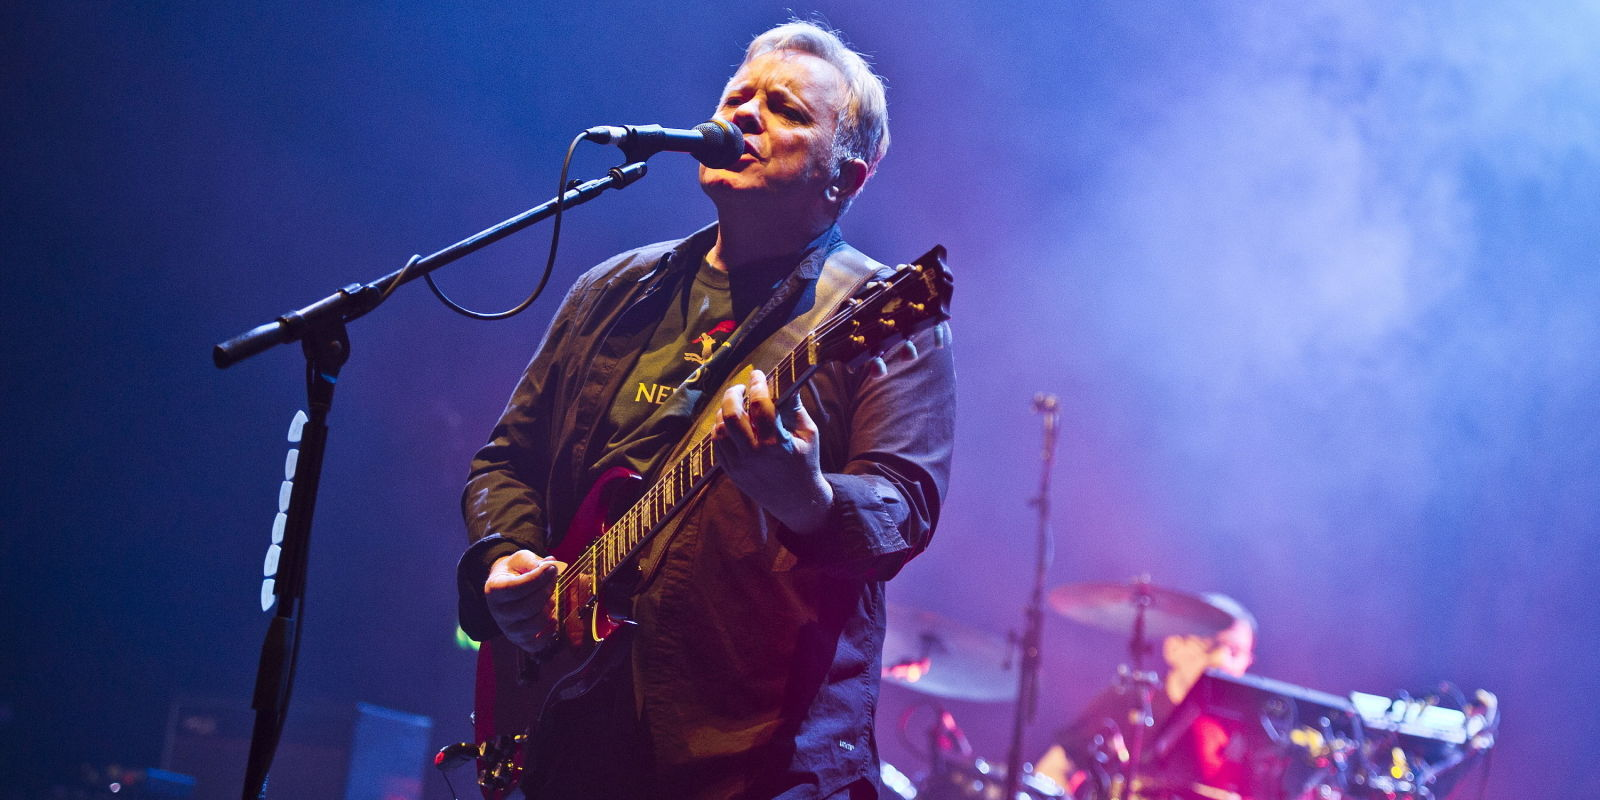 New Order announce UK tour dates and Brandon Flowers collaboration